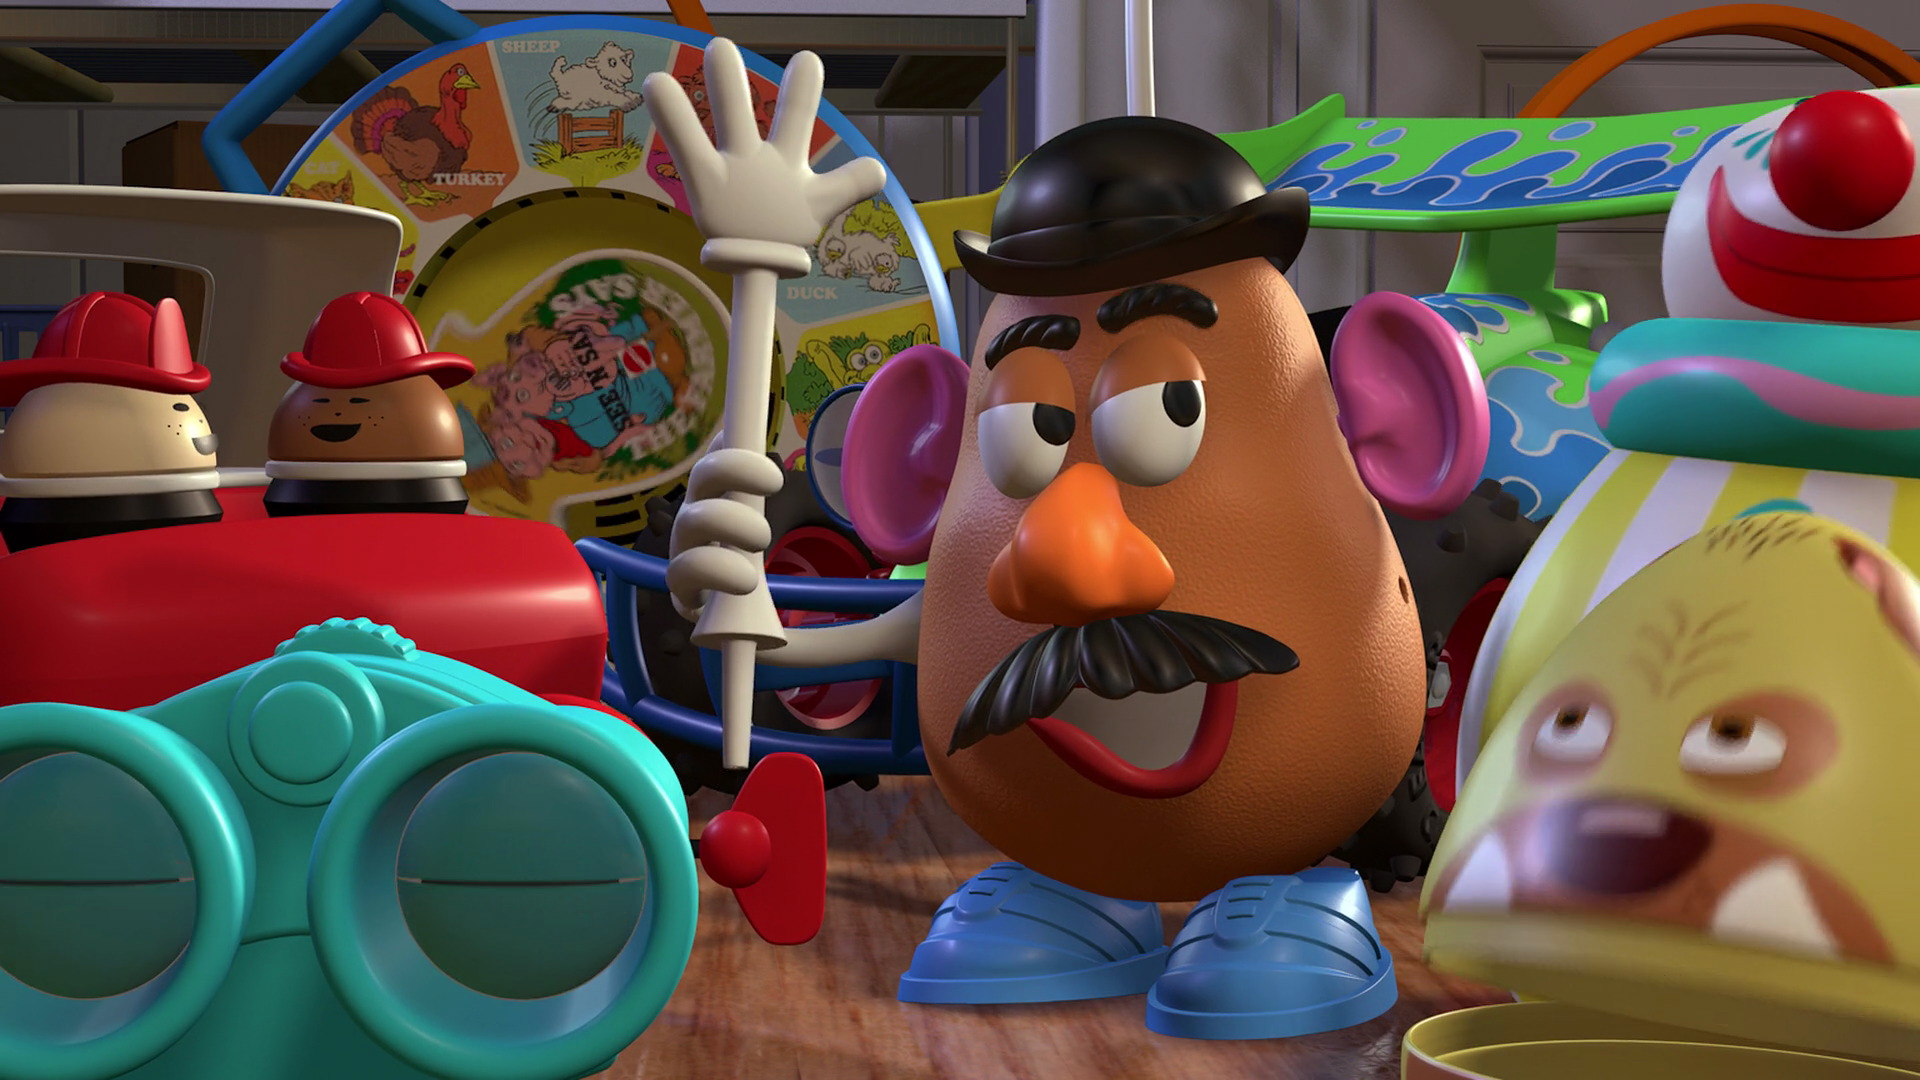 monsieur-patate-personnage-toy-story-02